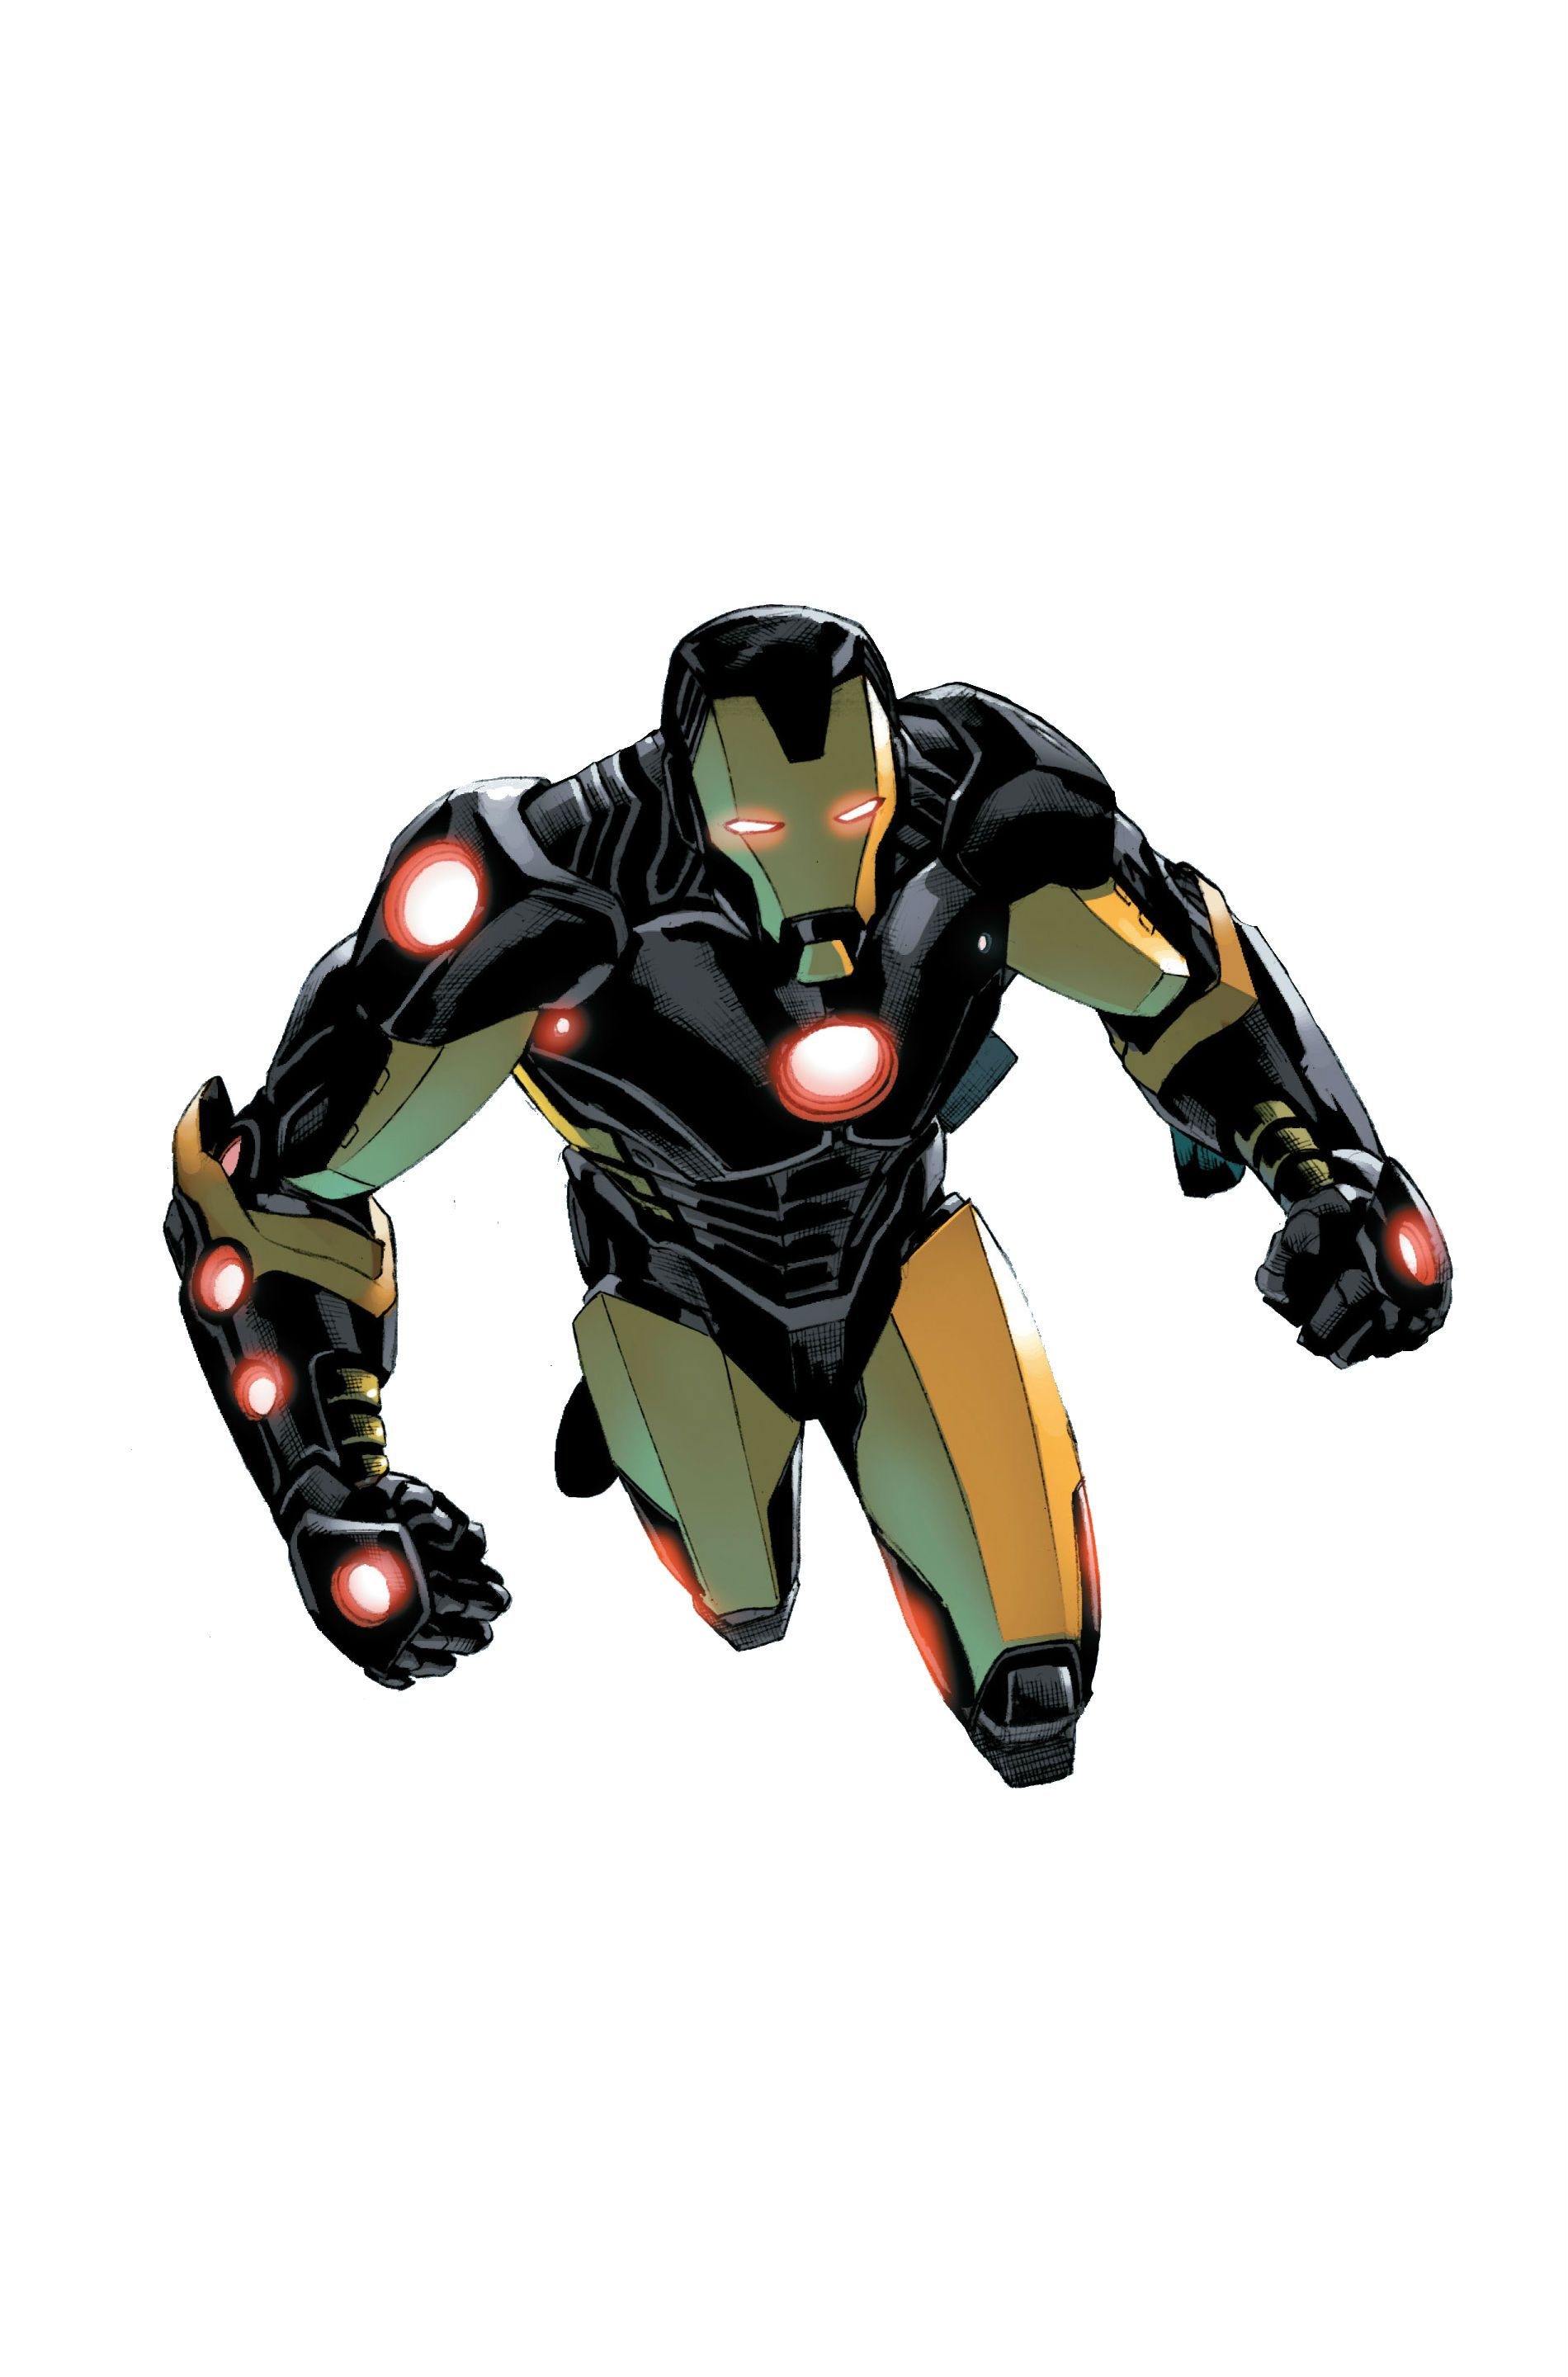 Iron Man Armor Model 42 By Carlo Pagulayan And Wellinton Alves